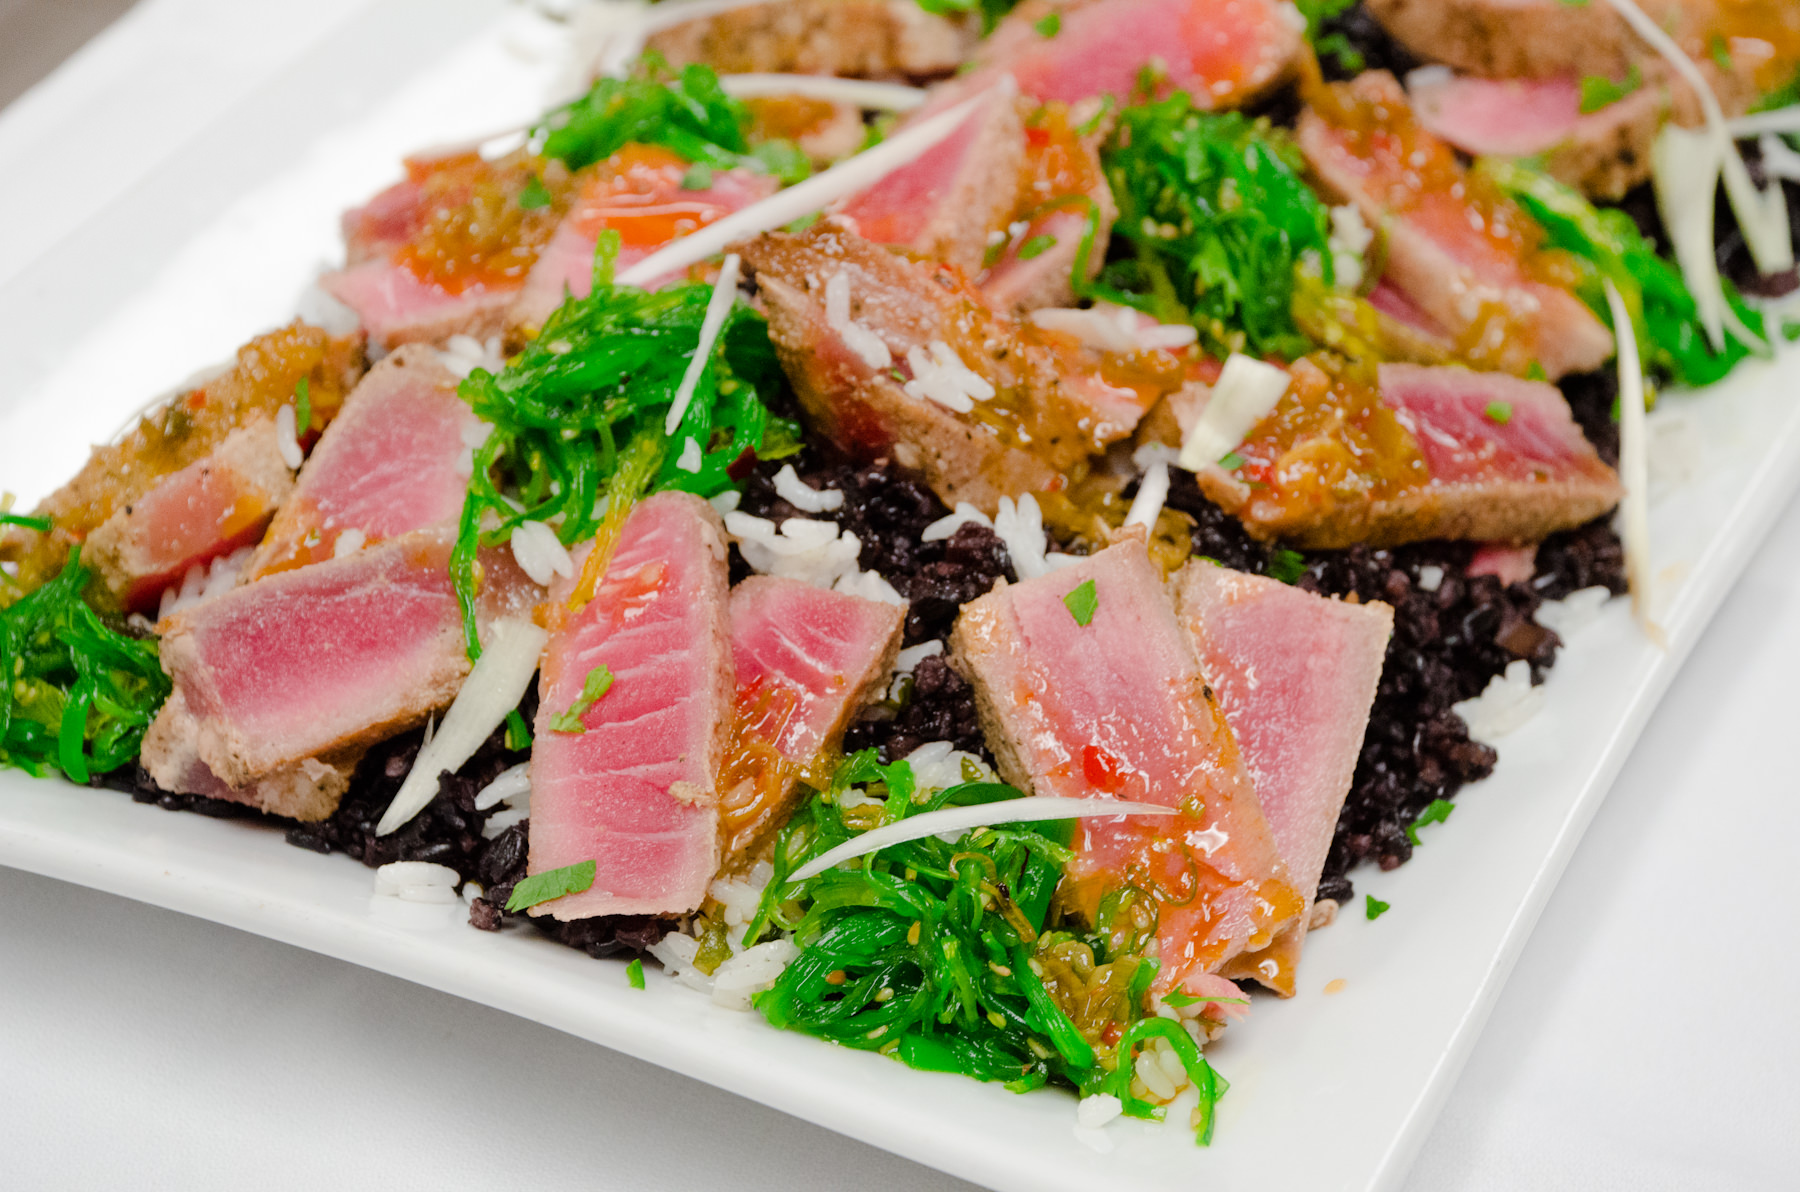 Seared Tuna Salad from Catering by Seasons